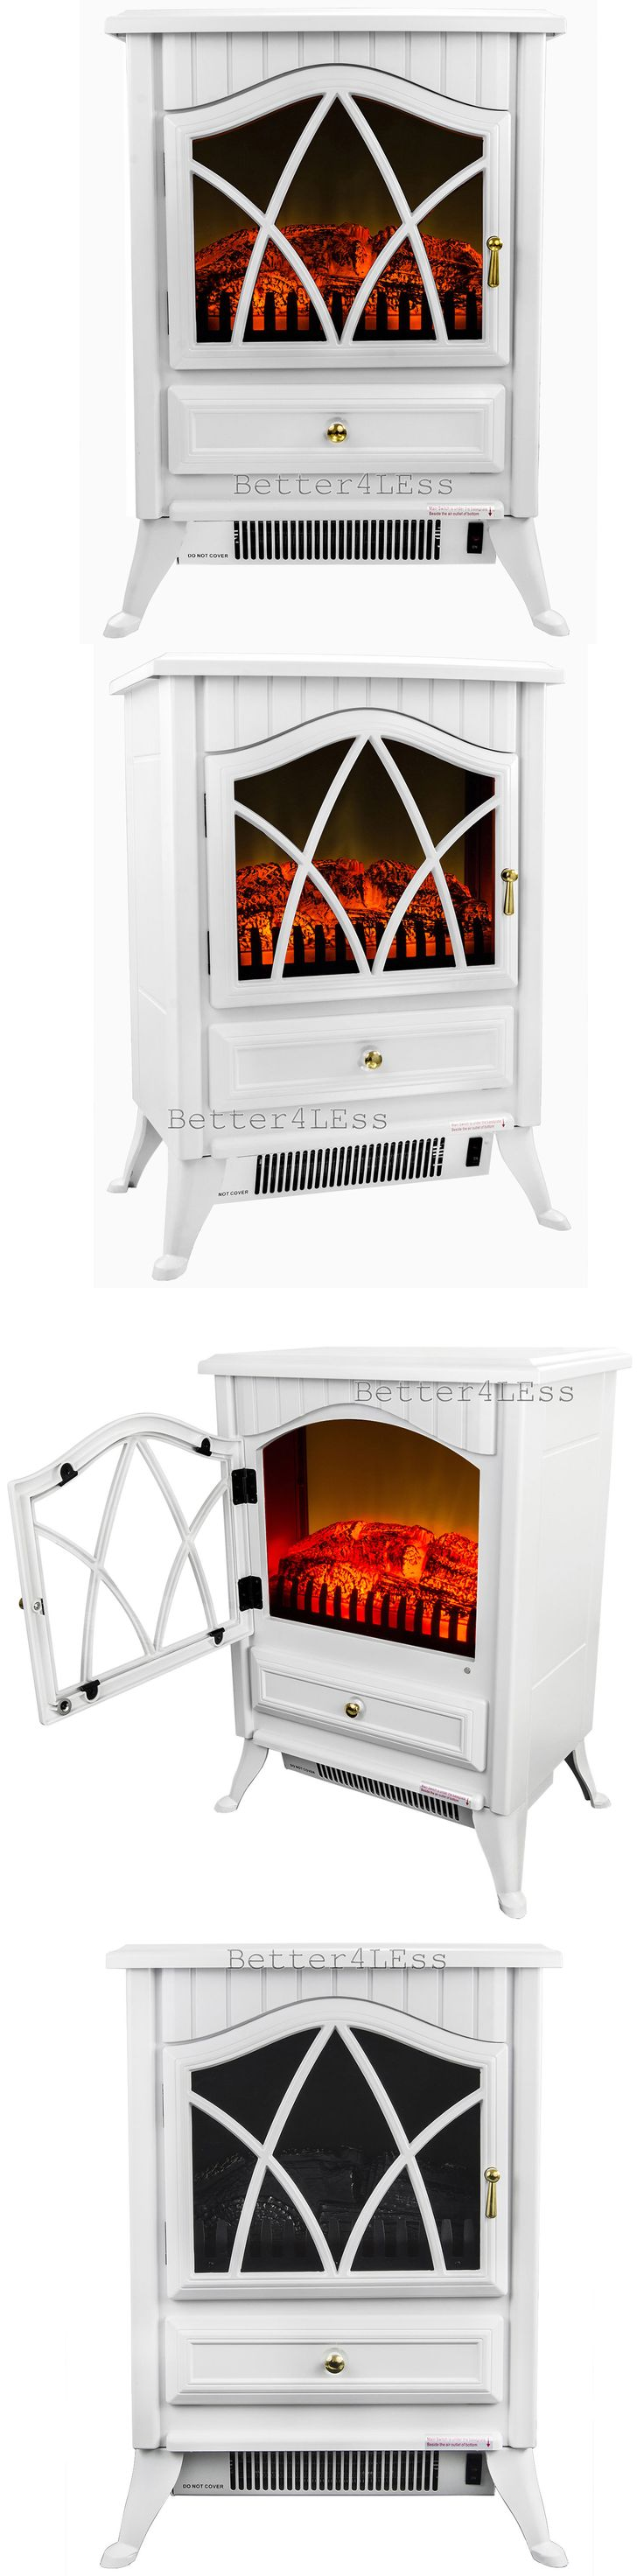 Fireplaces 175756: 16 1500W White Free Standing Portable Small Size Electric Fireplace Heater -> BUY IT NOW ONLY: $198.99 on eBay!